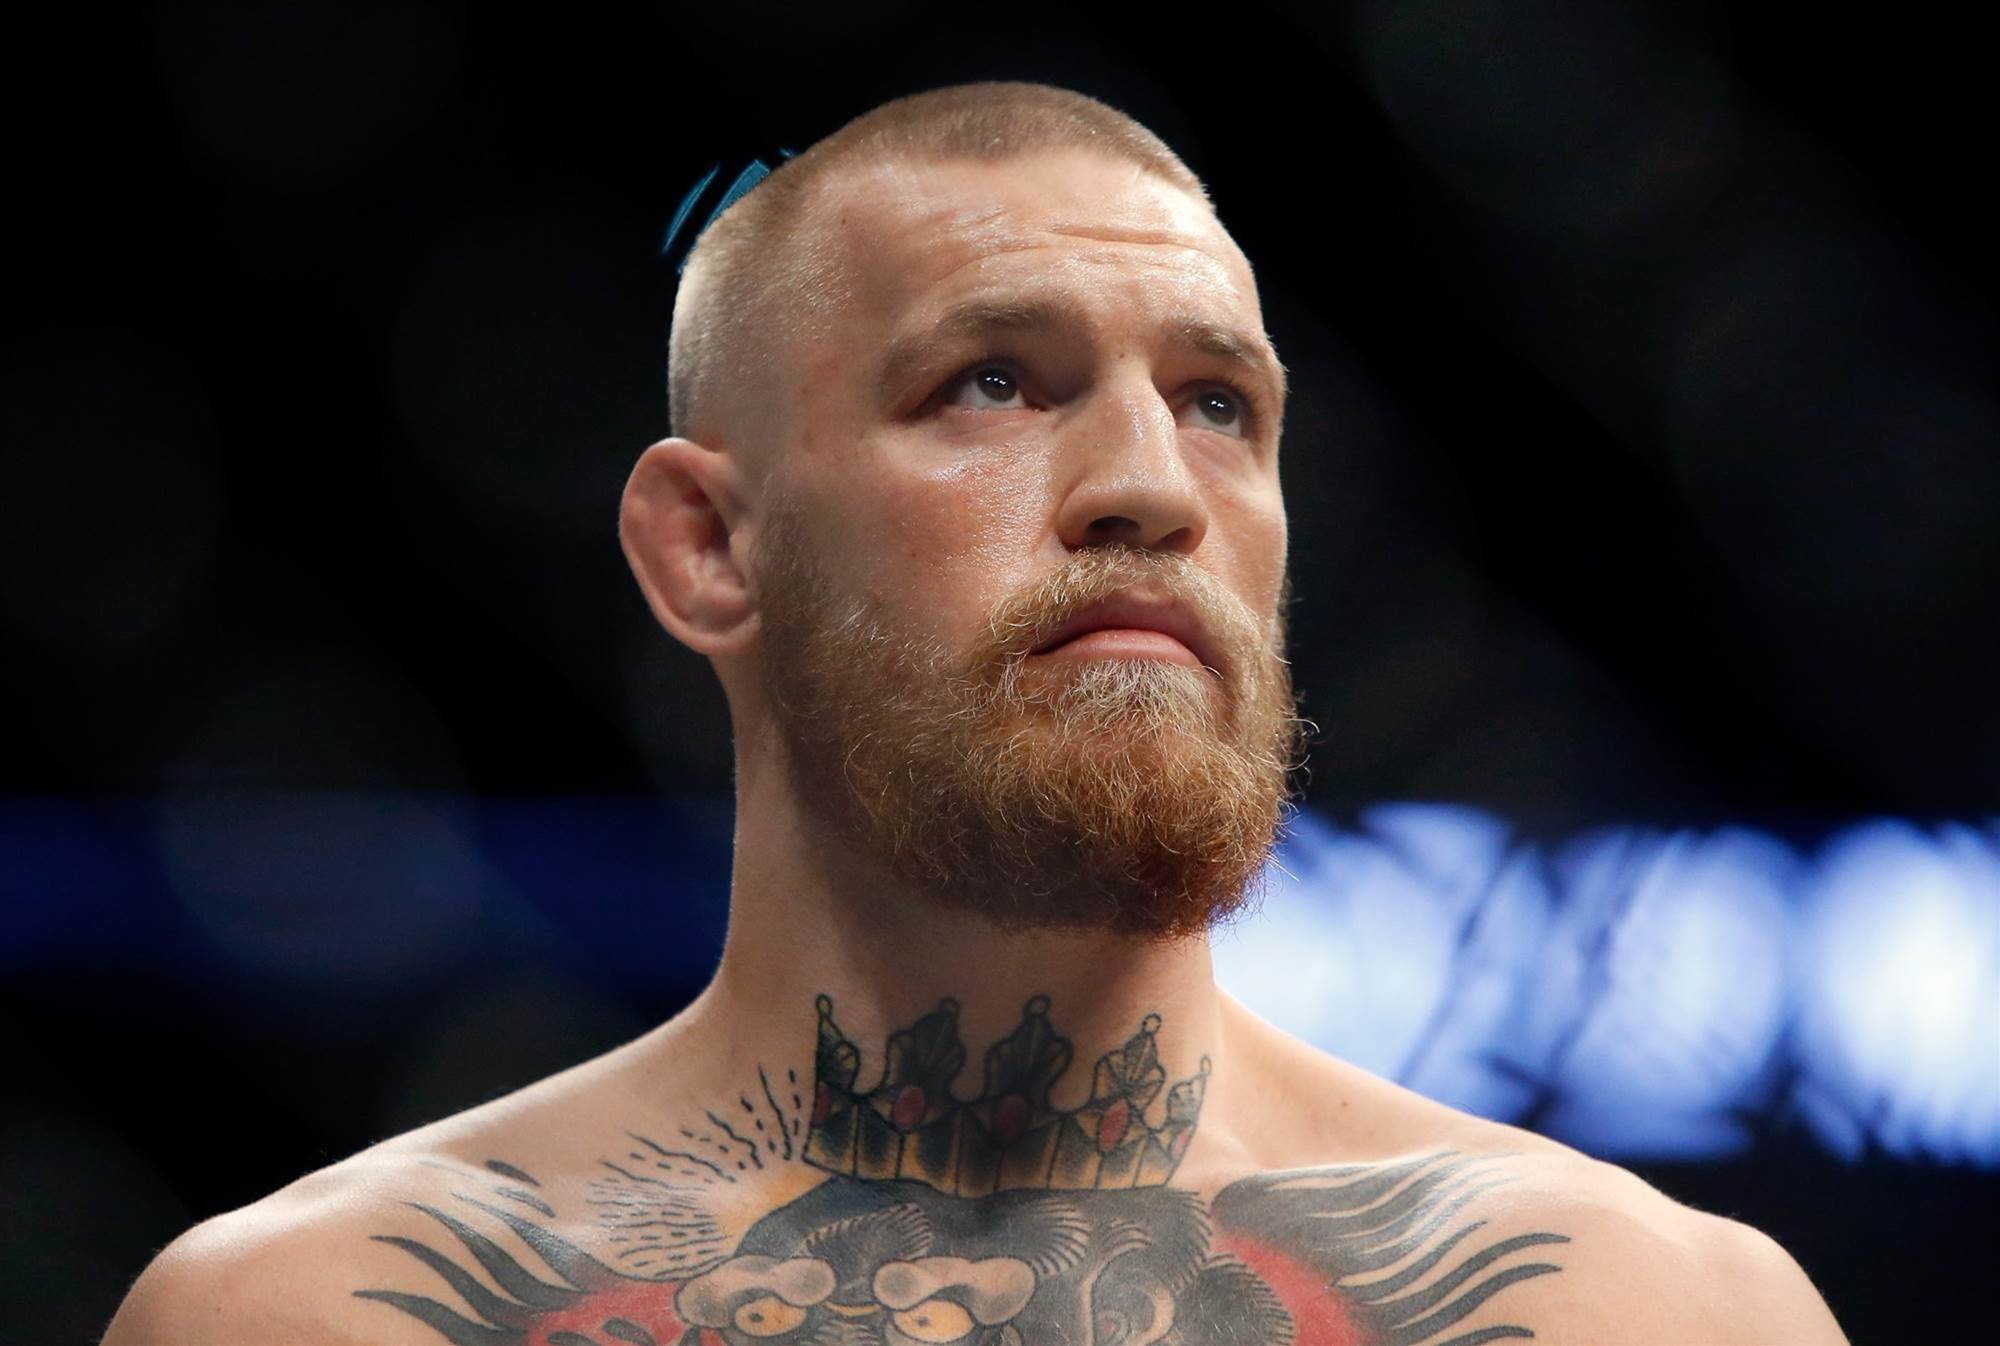 McGregor's life at risk after mobster fued